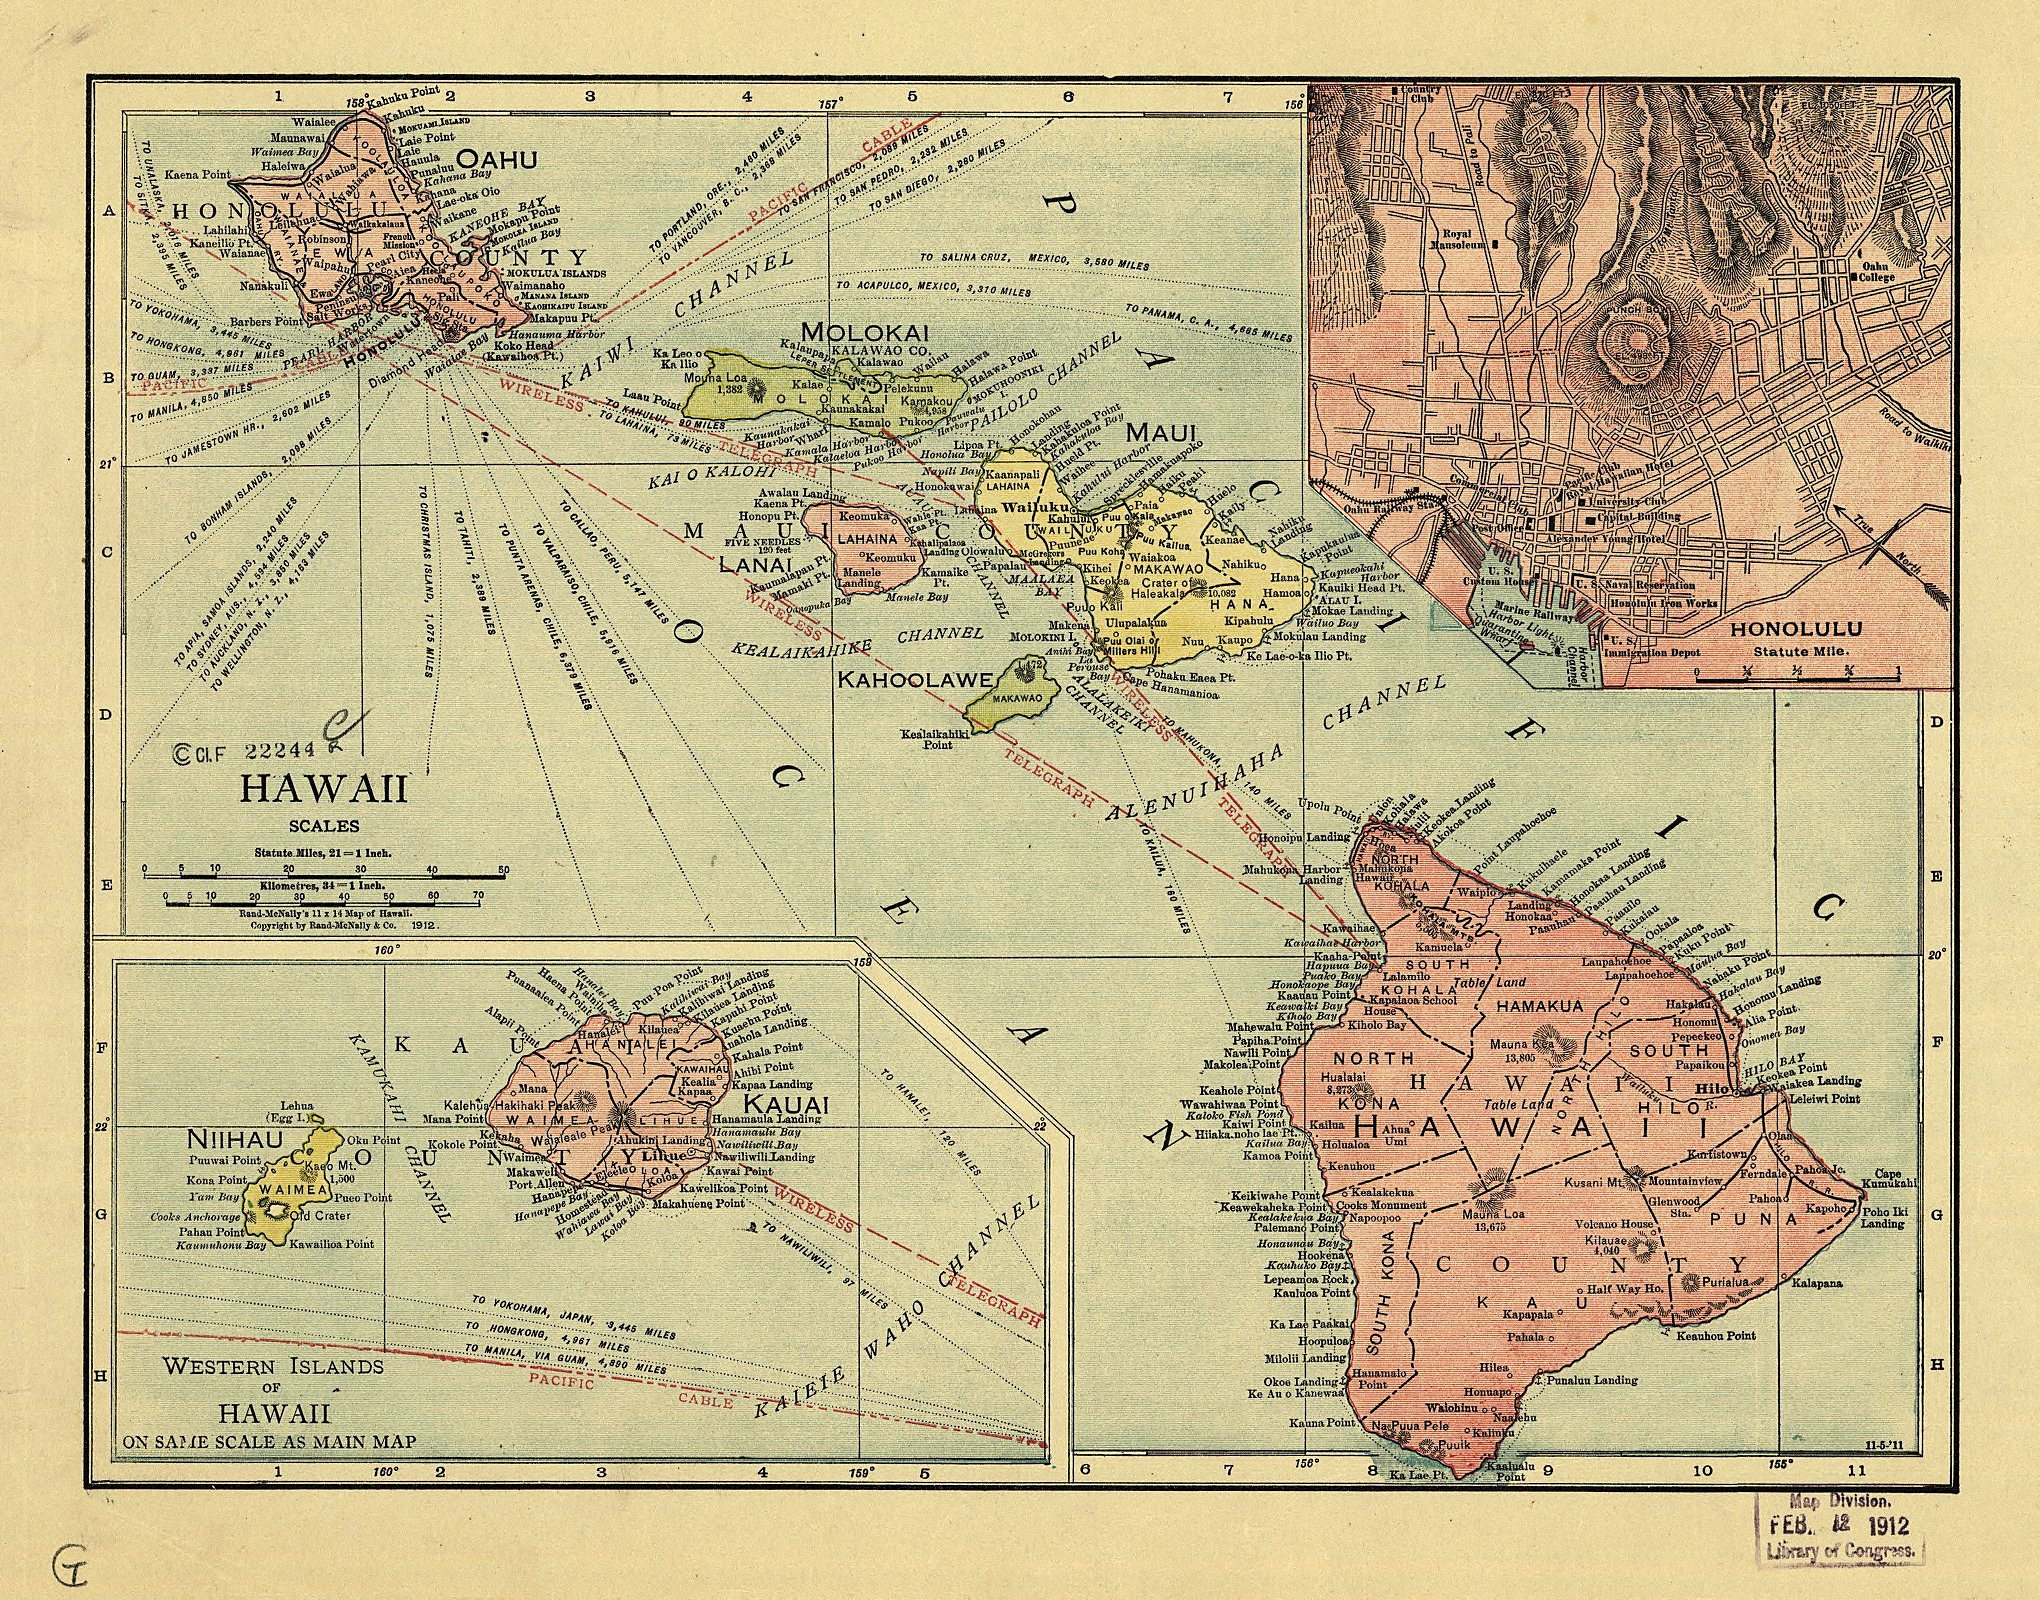 The USGenWeb Archives Digital Map Library  Hawaii Maps Index